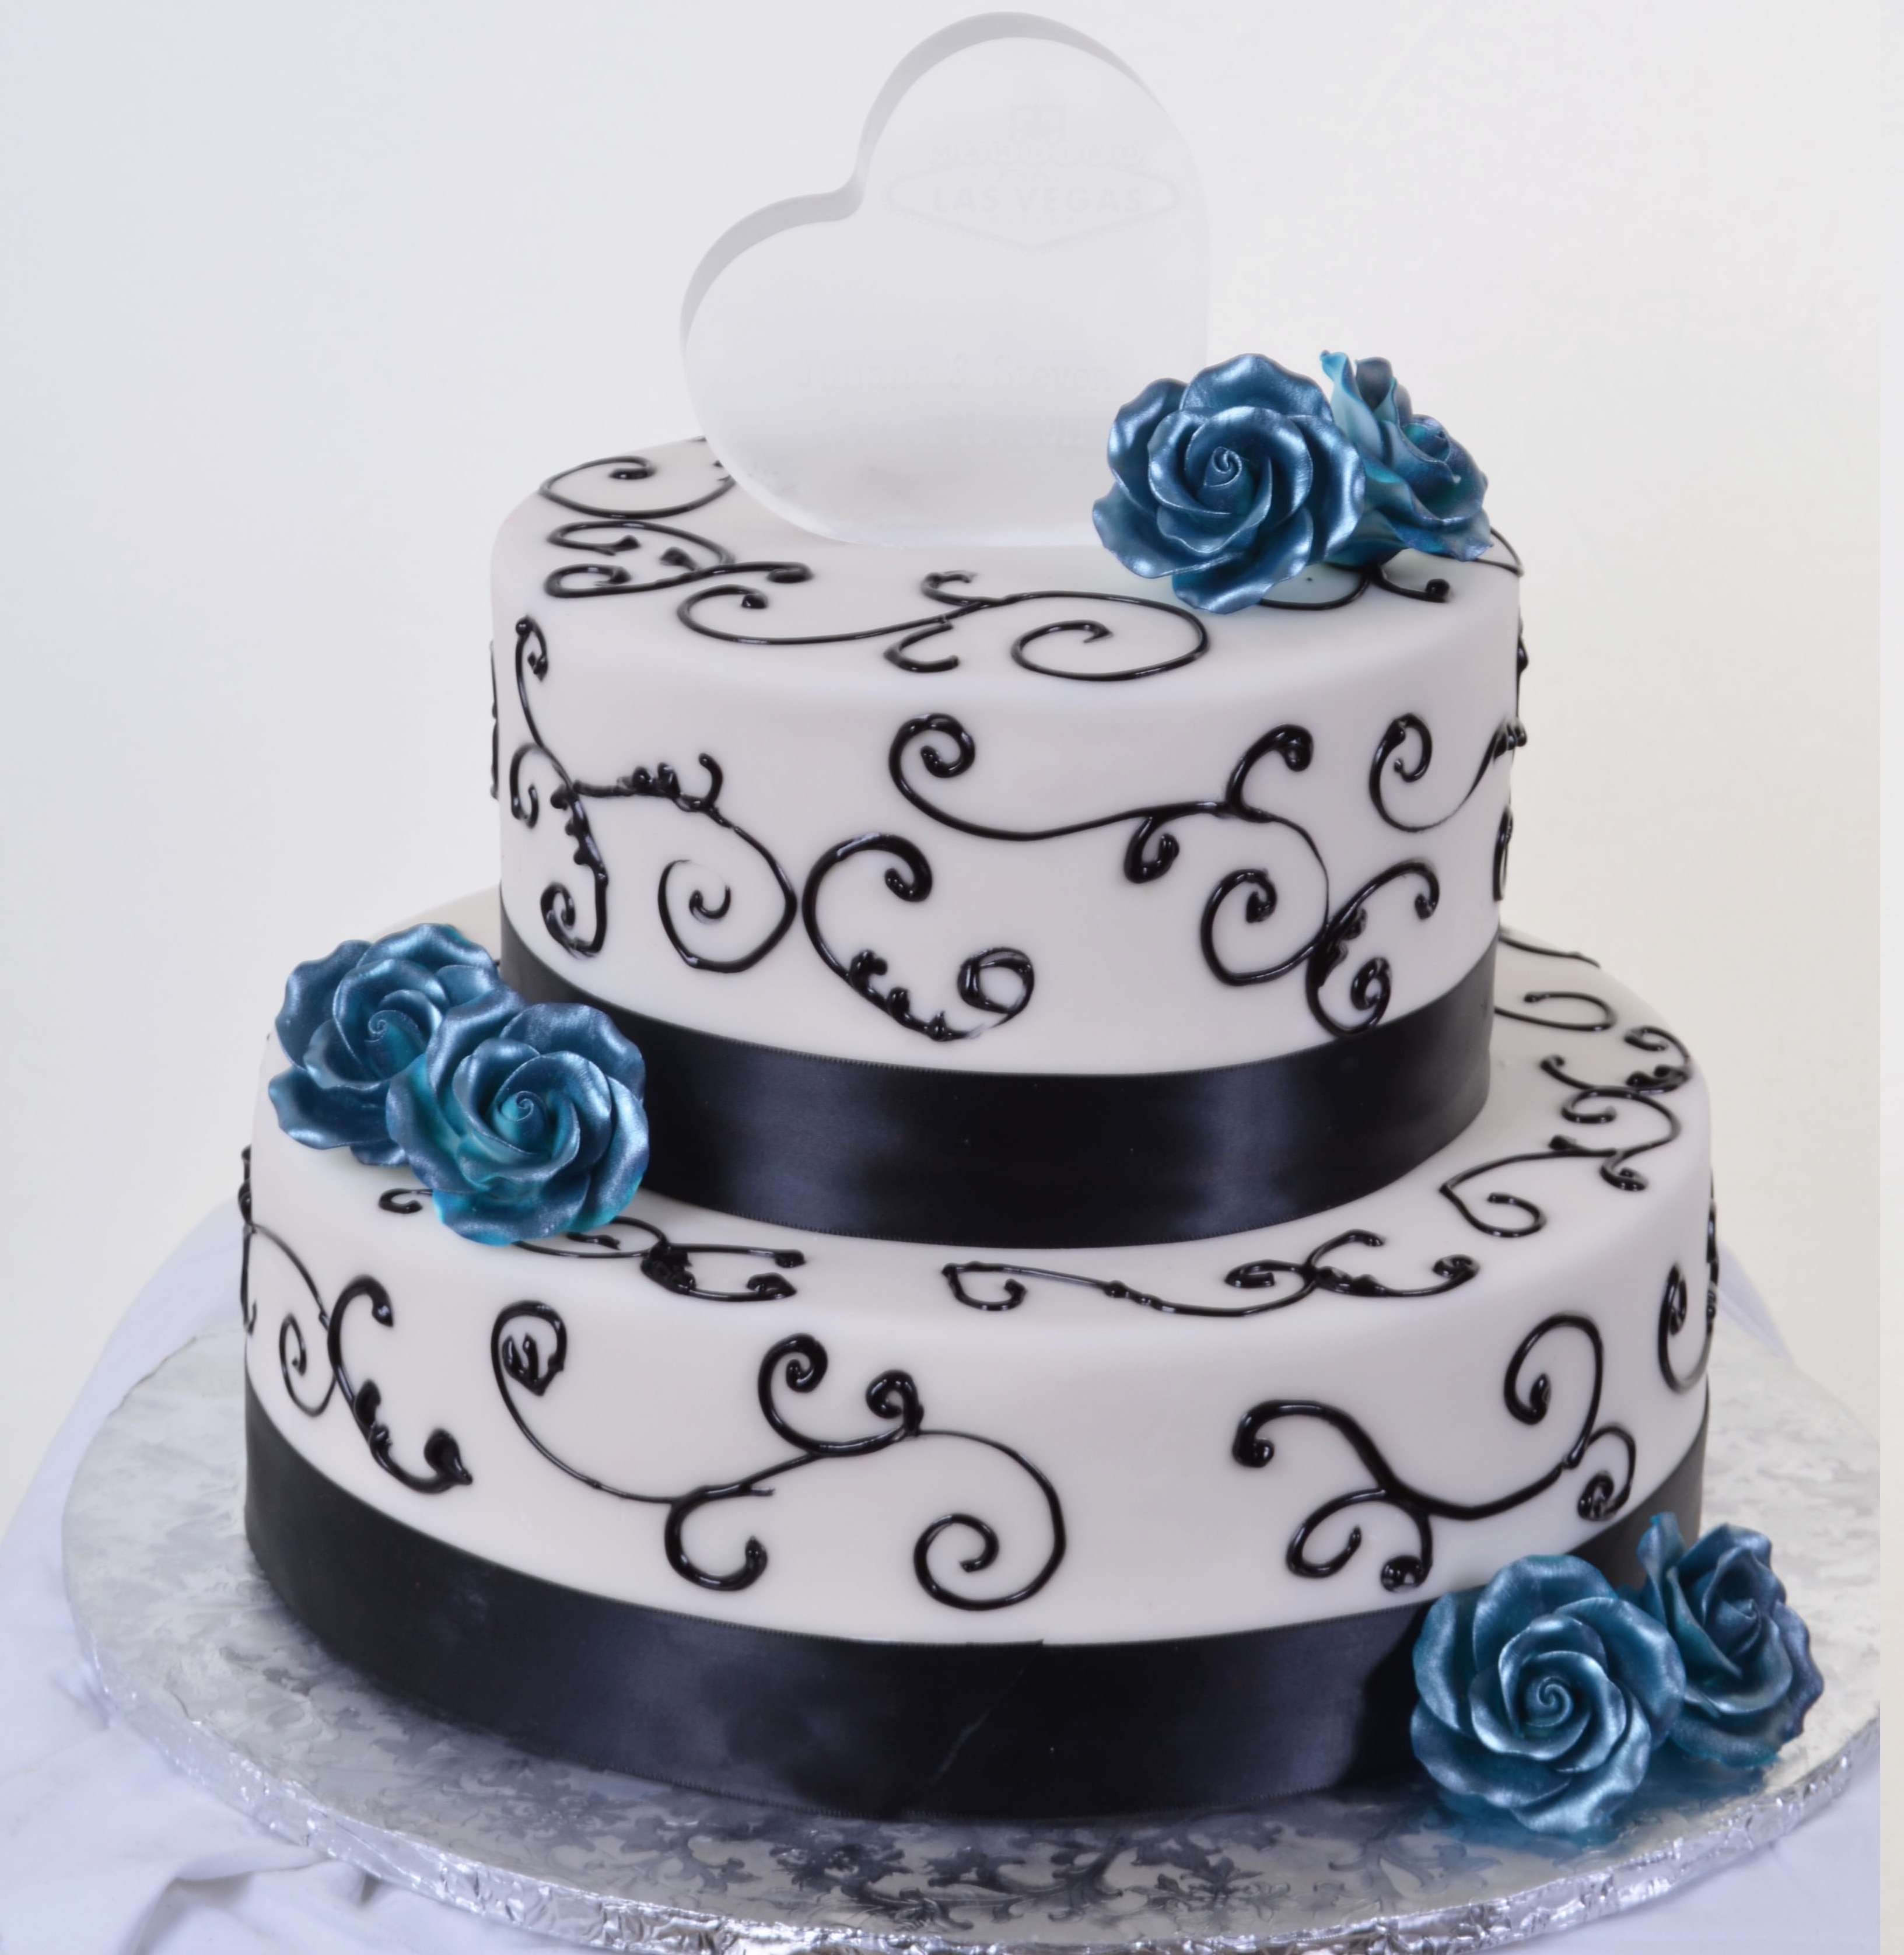 Pastry Palace Las Vegas - Cake 589 - Blue Roses & Chocolate Ribbons